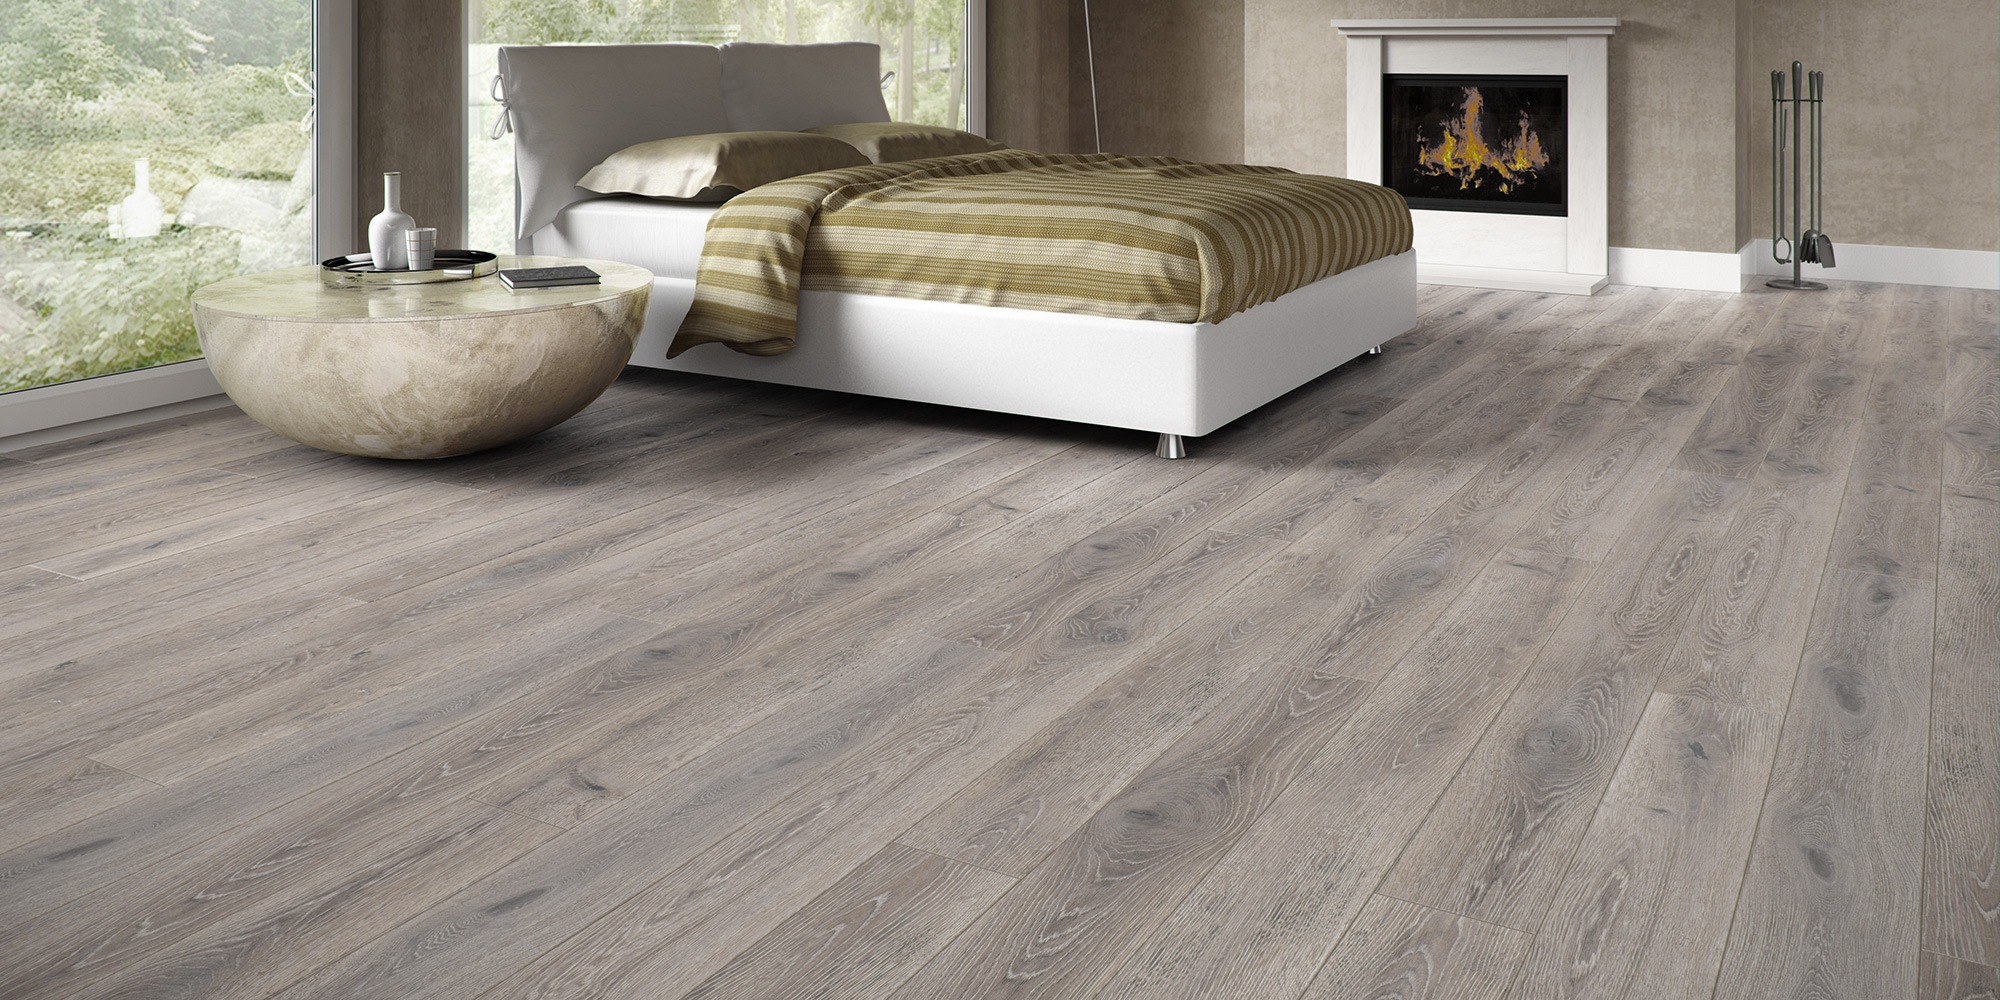 Large selection of top quality engineered wood floors in Ireland.